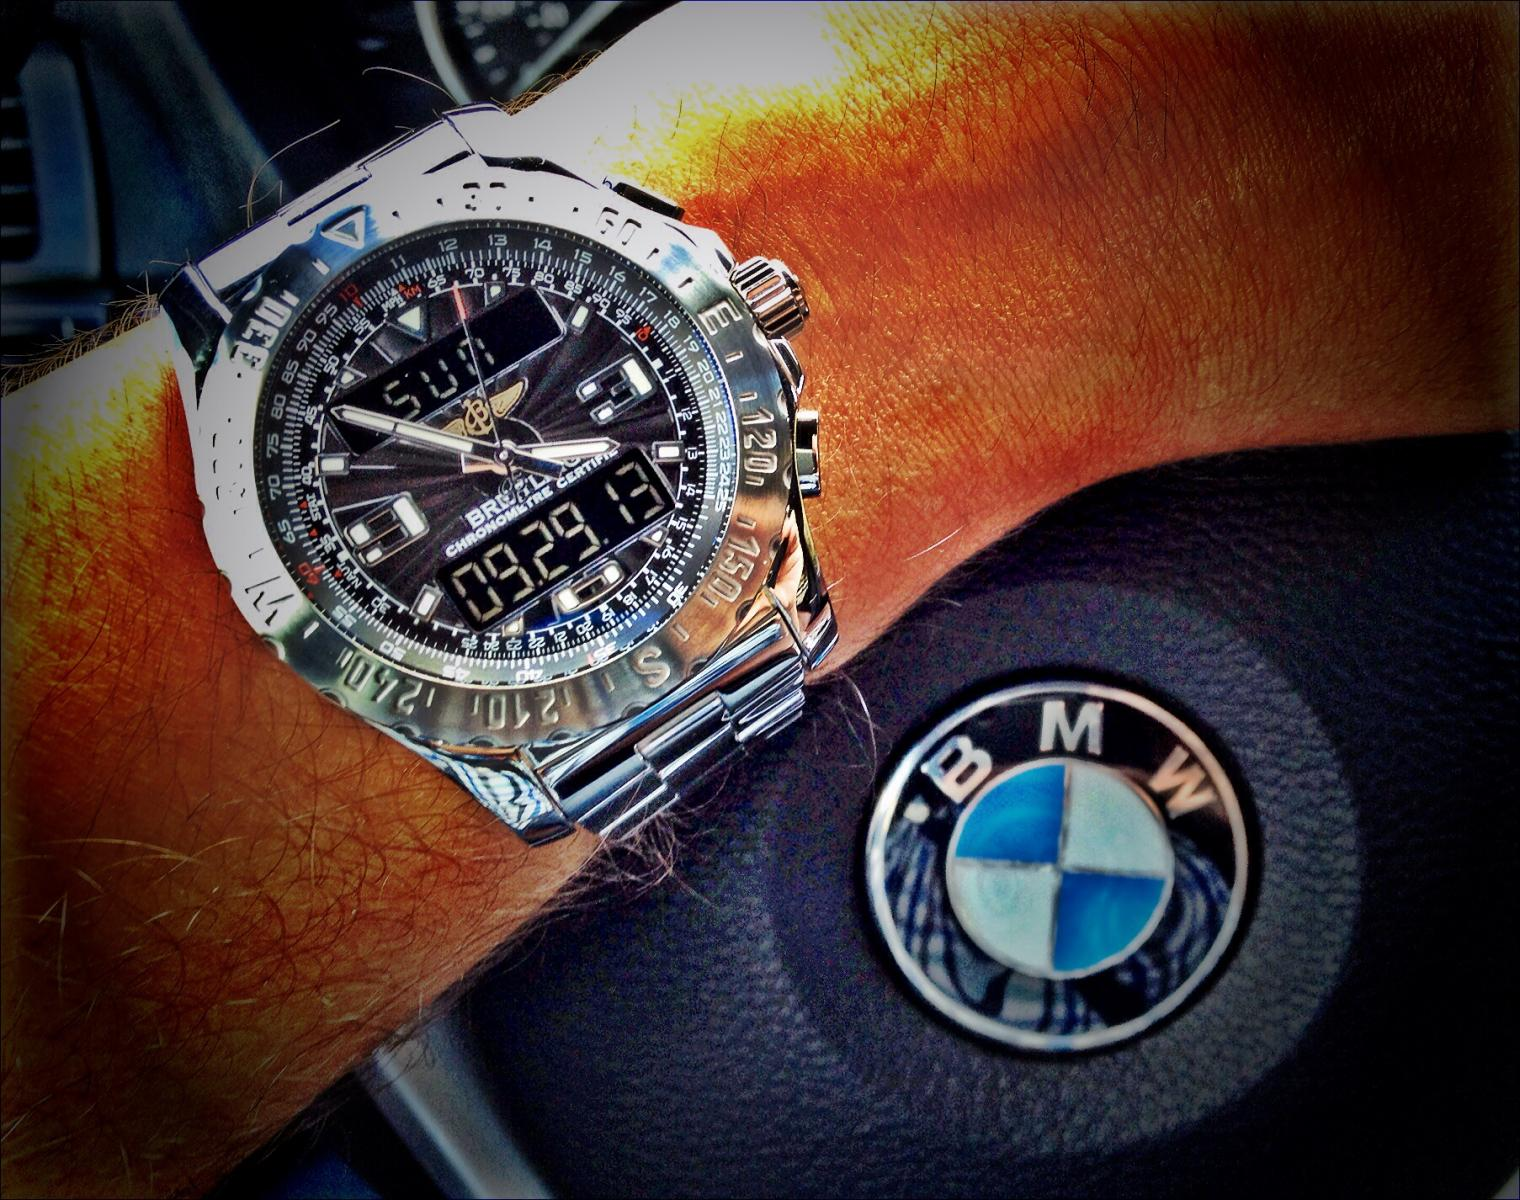 Post Your Best Wrist Shot Pictures-image.jpg